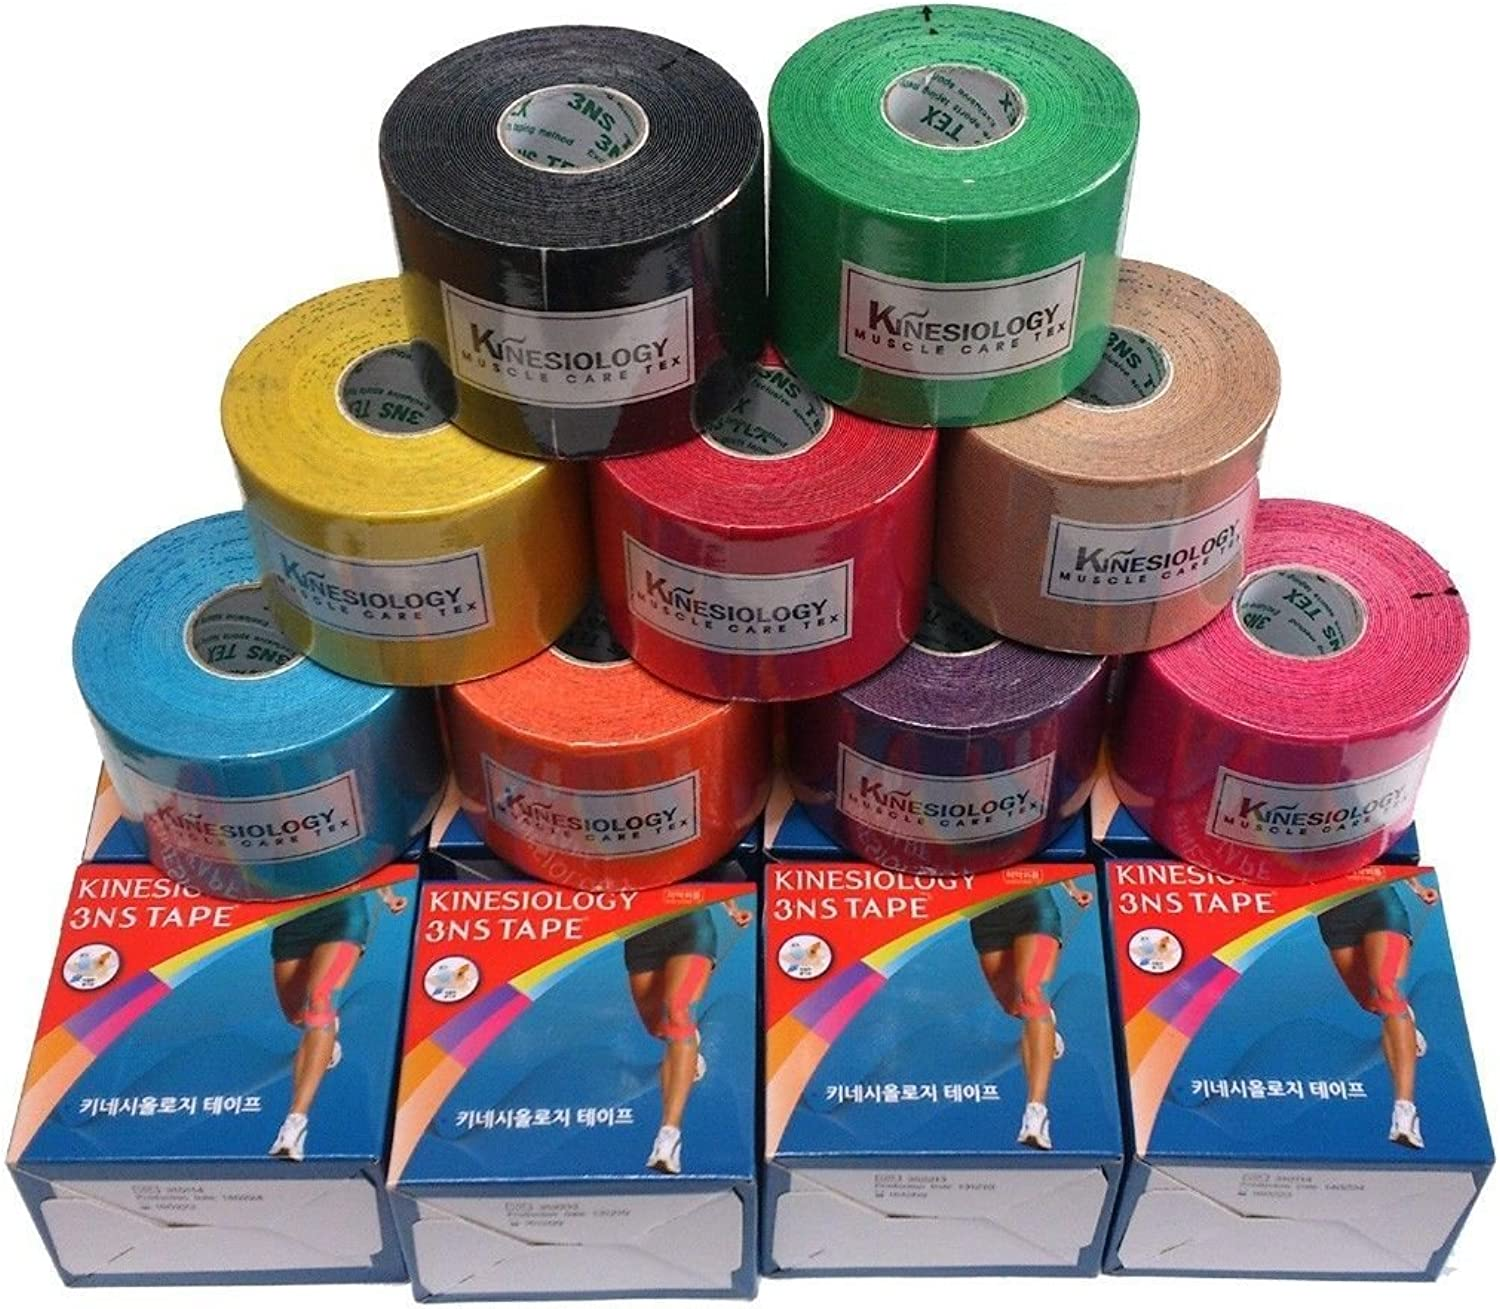 12 rolls  3NS TEX Kinesiology Muscle Care Sports Tape (612 days by USPS)